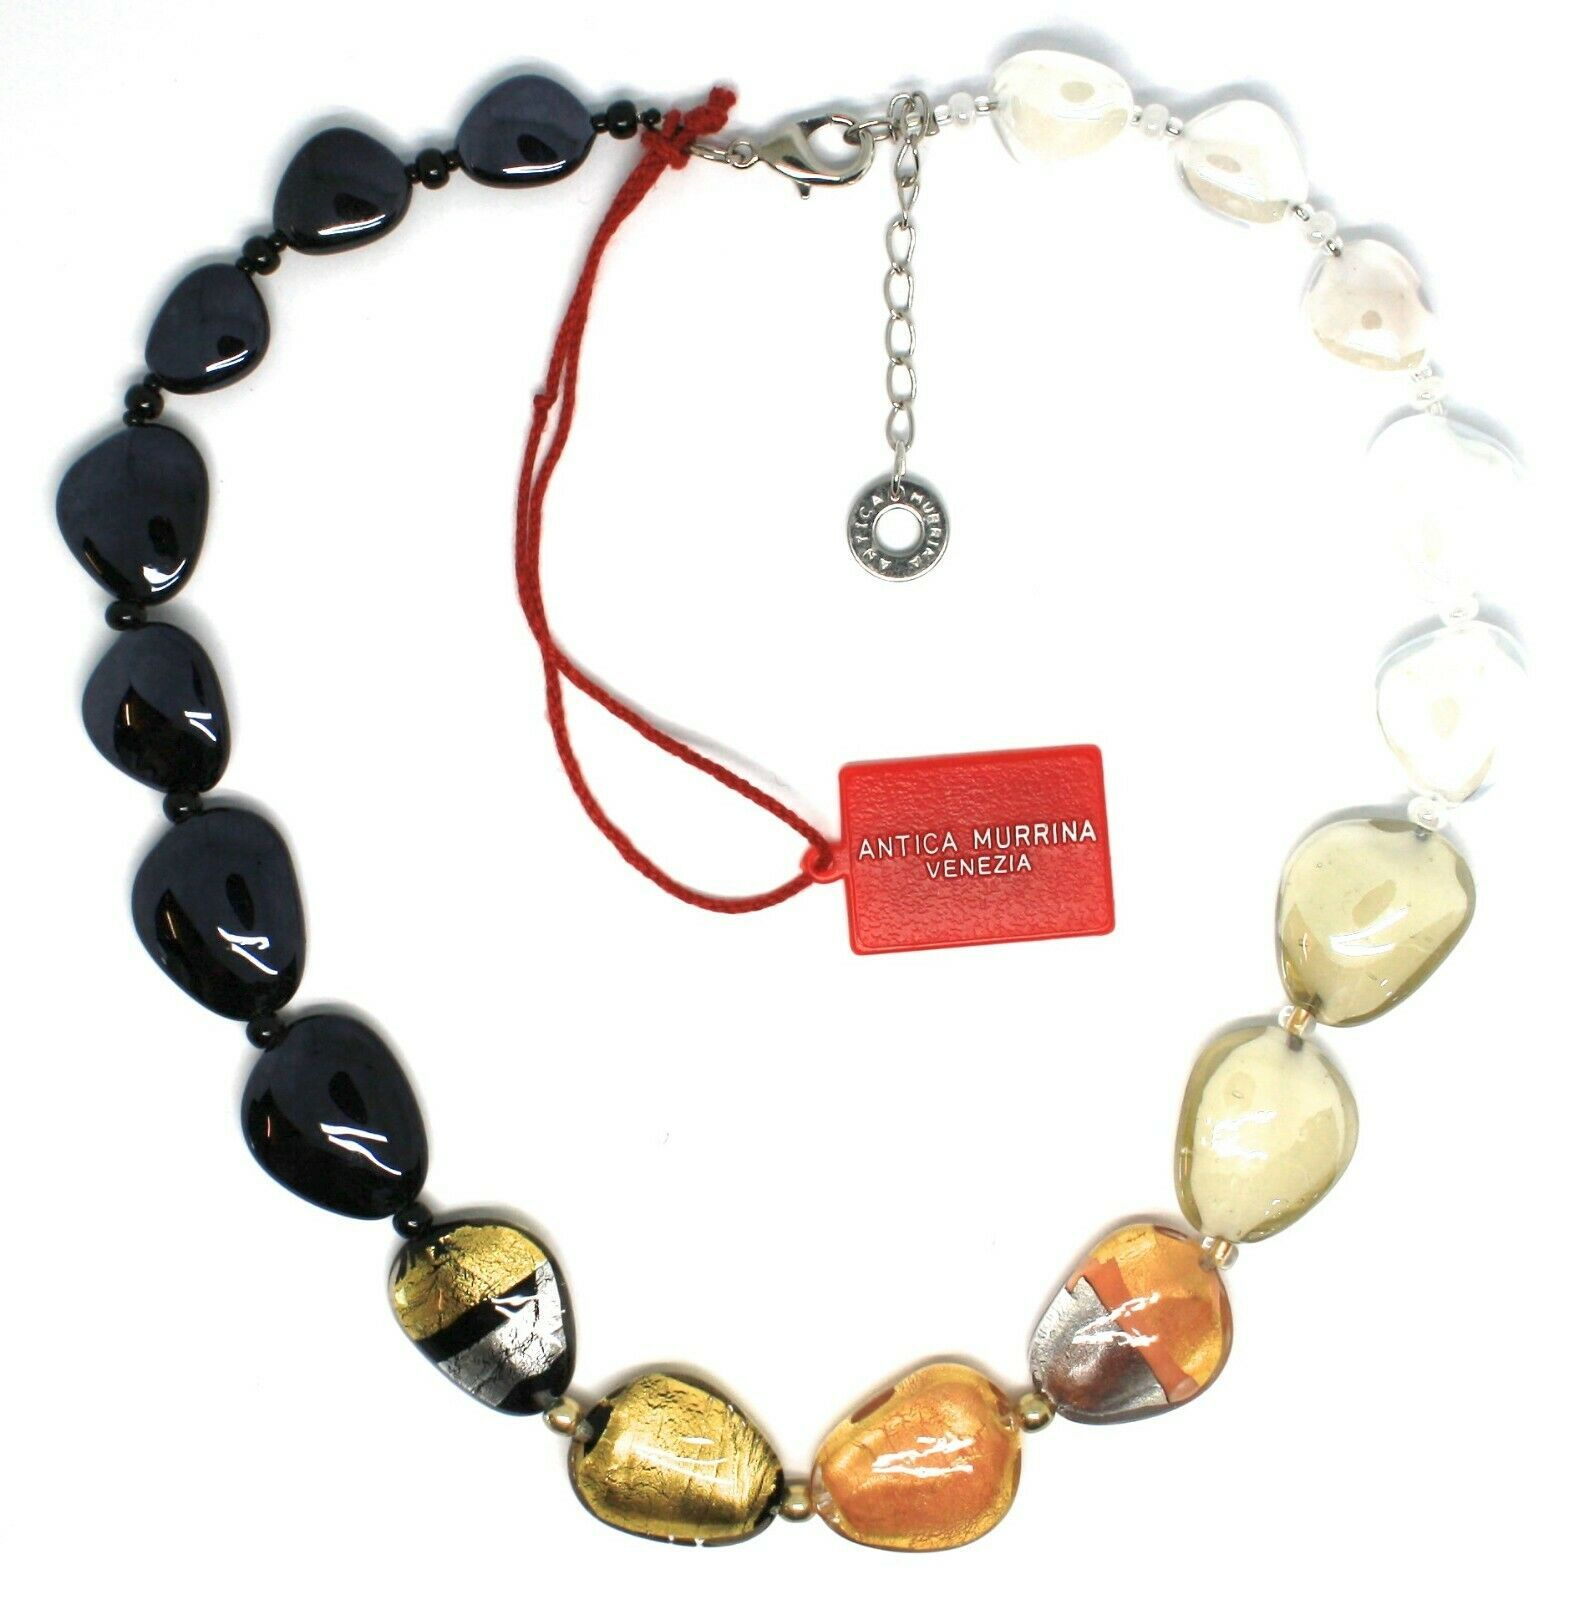 Necklace Antica Murrina Venezia, Glass Murano, White Black, Leaf Gold, COA13A15